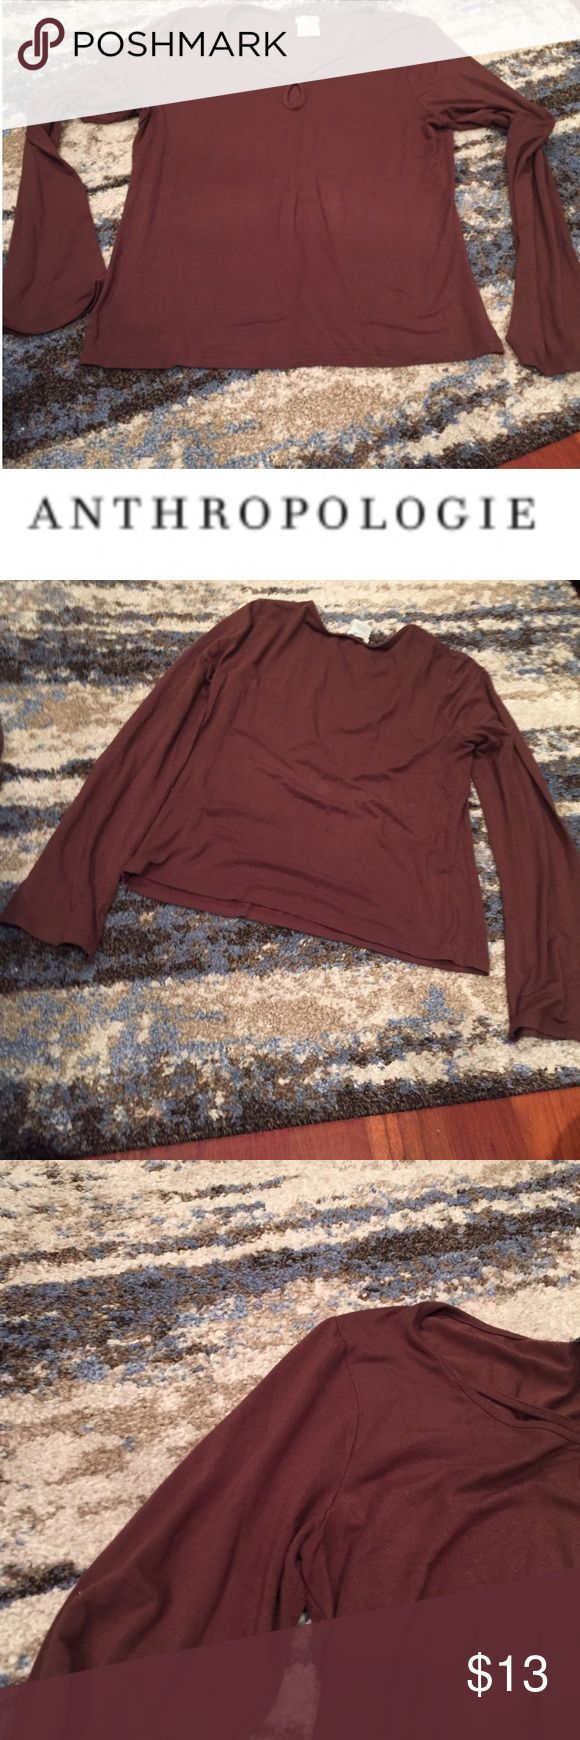 Anthropologie Odille Brown Long Sleeve Top Anthropologie Odille Brown Long Sleeve Top. Cut out neckline. 20 inch bust. 23 inches long. Gently worn. Great condition. Feel free to make an offer or bundle & save! Anthropologie Tops